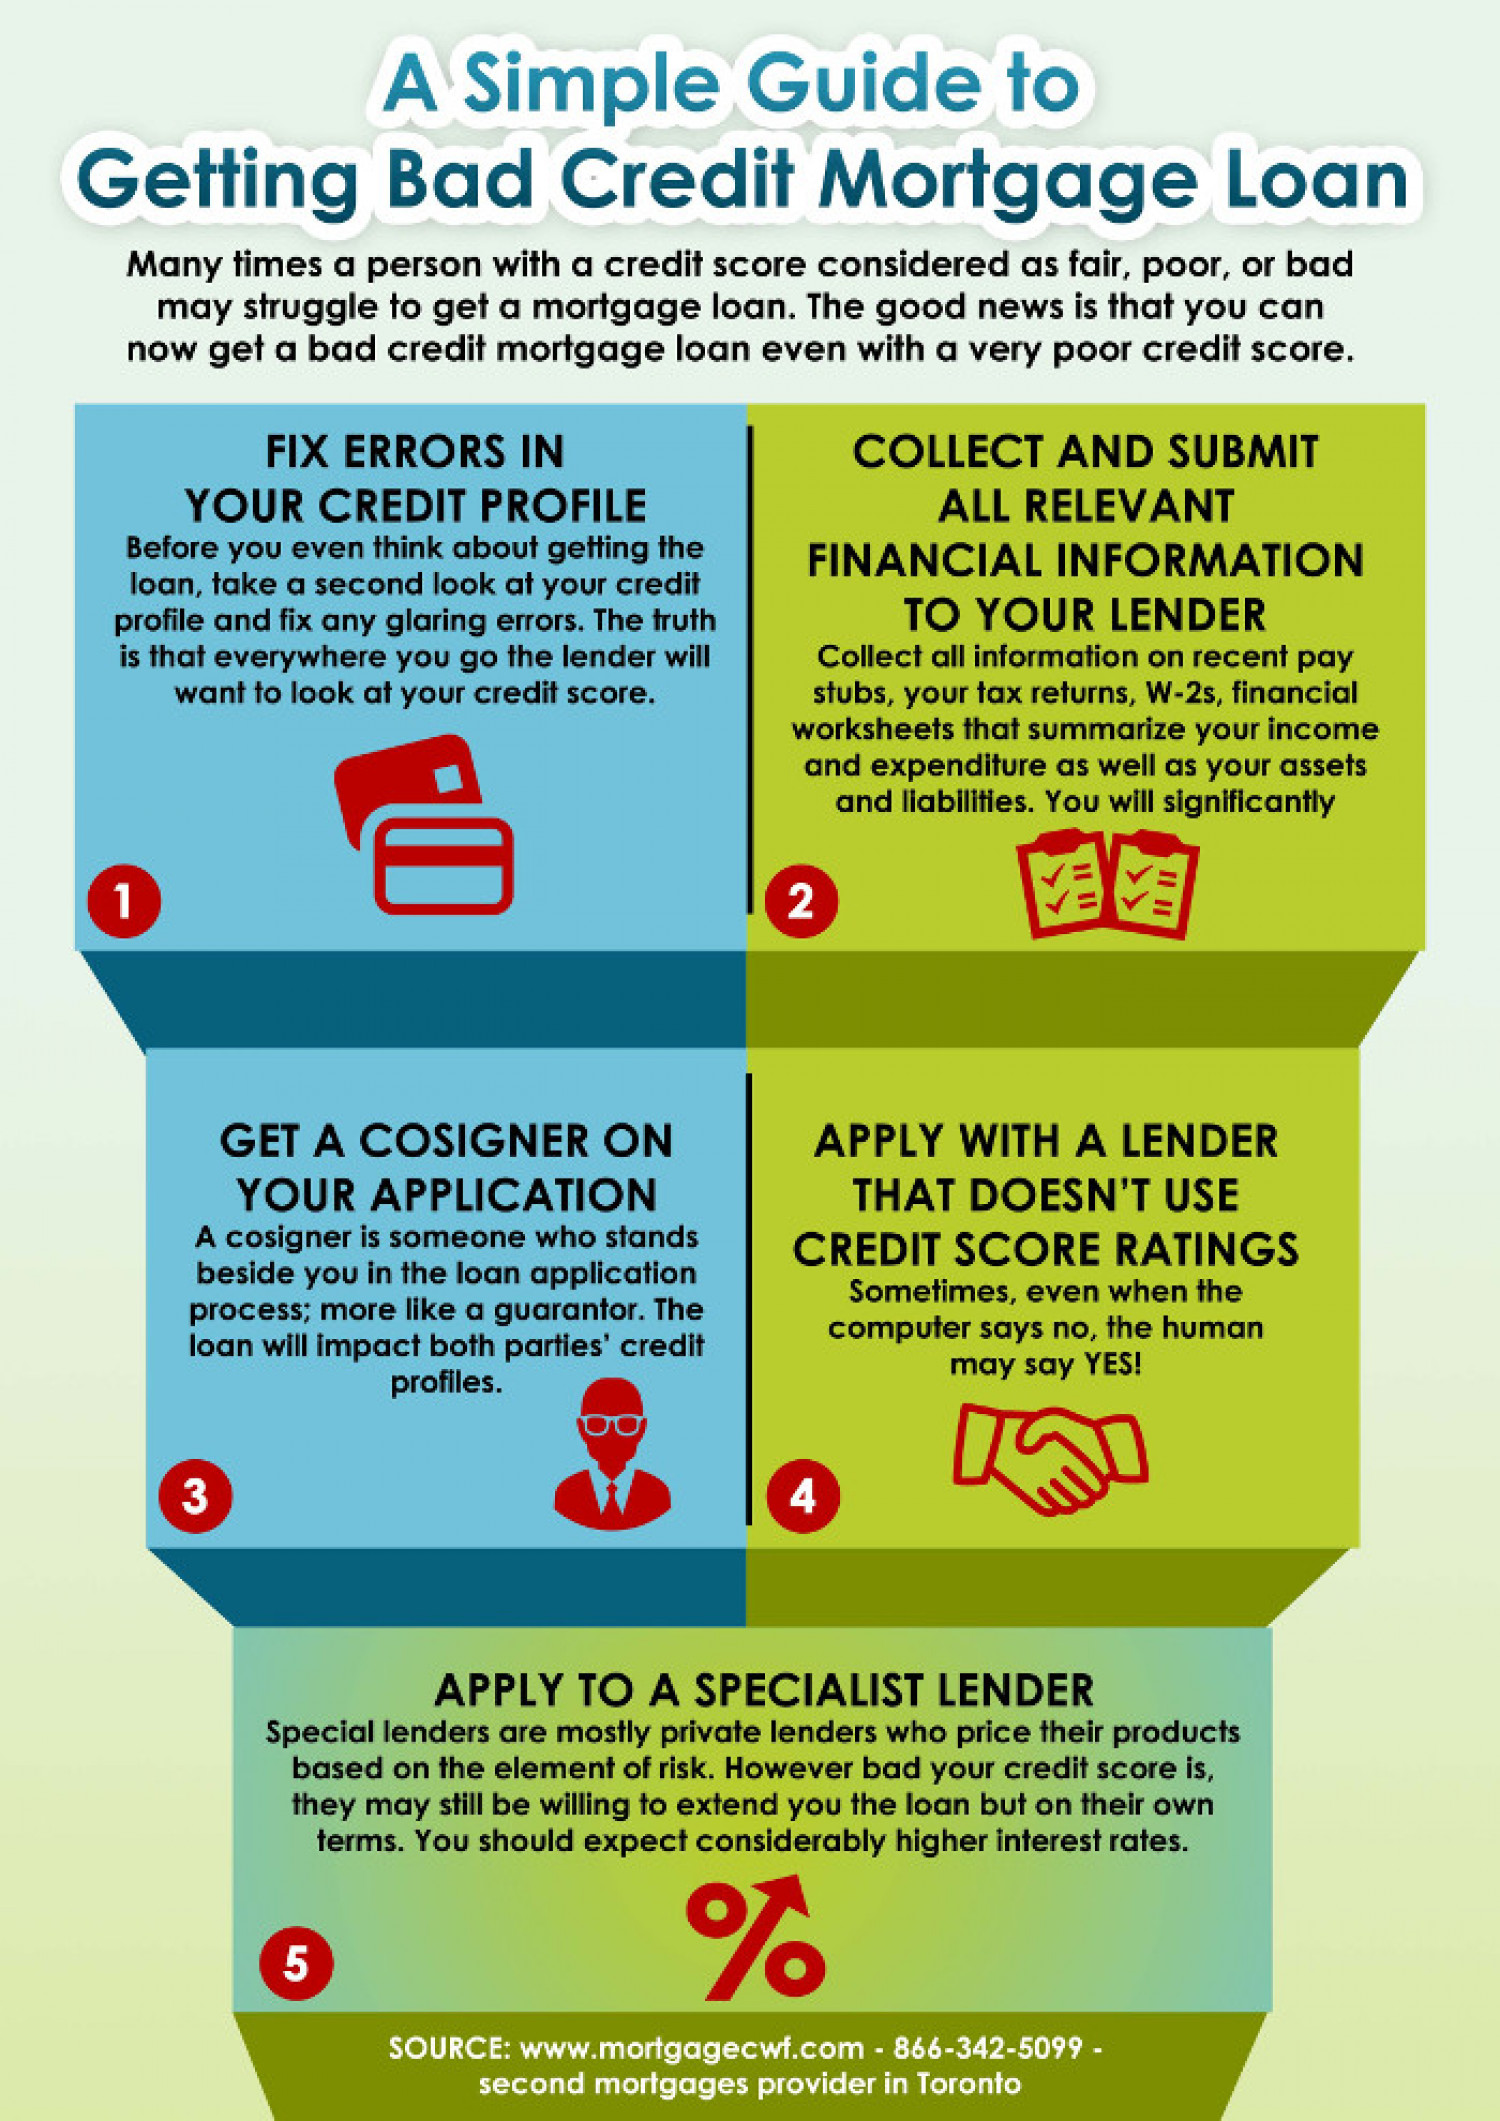 A Simple Guide to Getting Bad Credit Mortgage Loan | Visual.ly